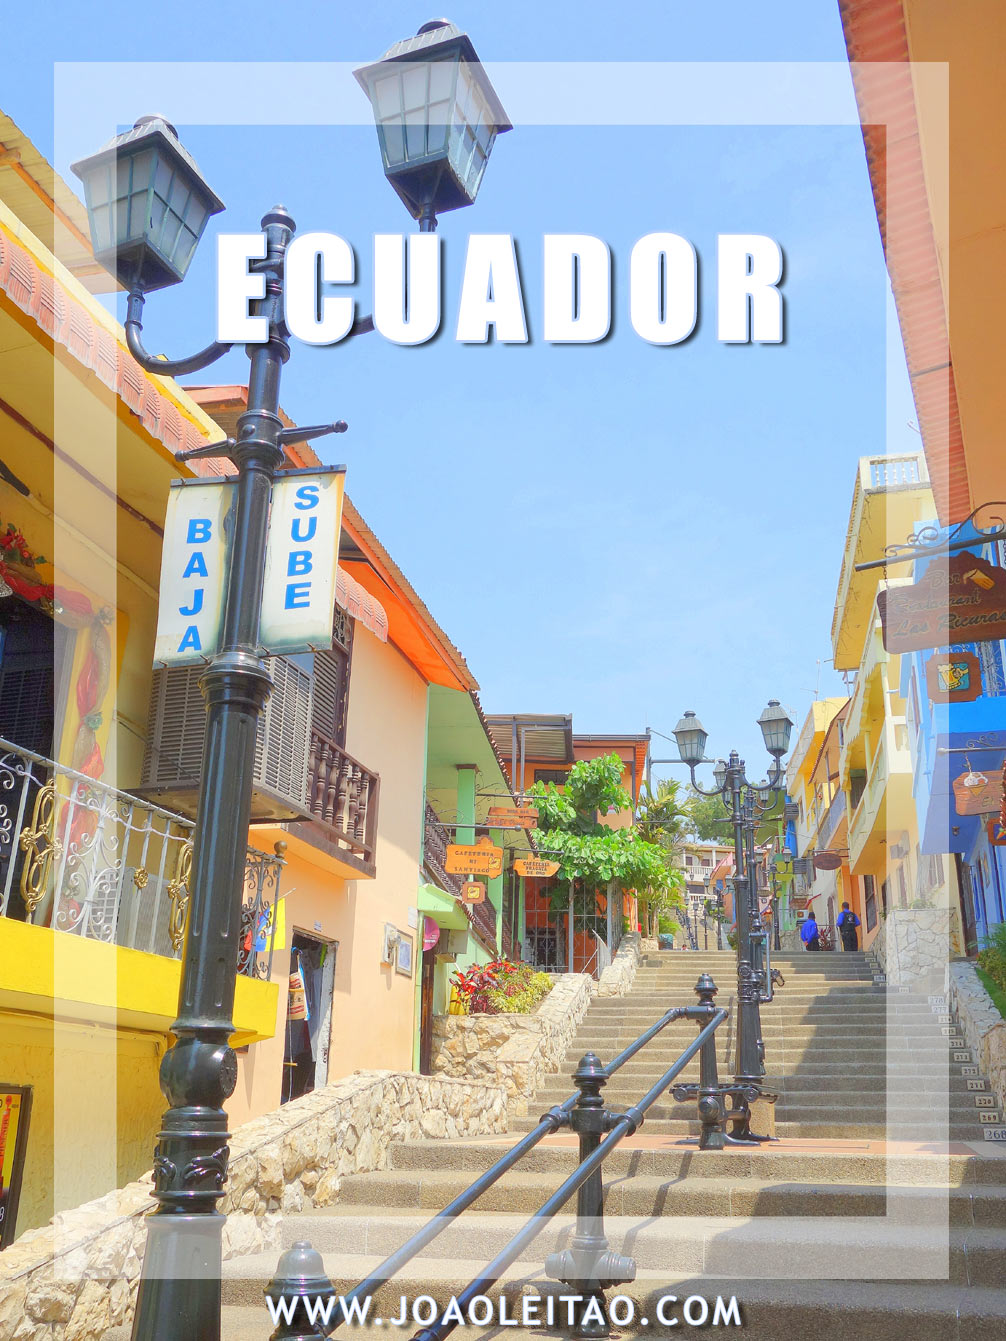 Ecuador Budget Accommodation